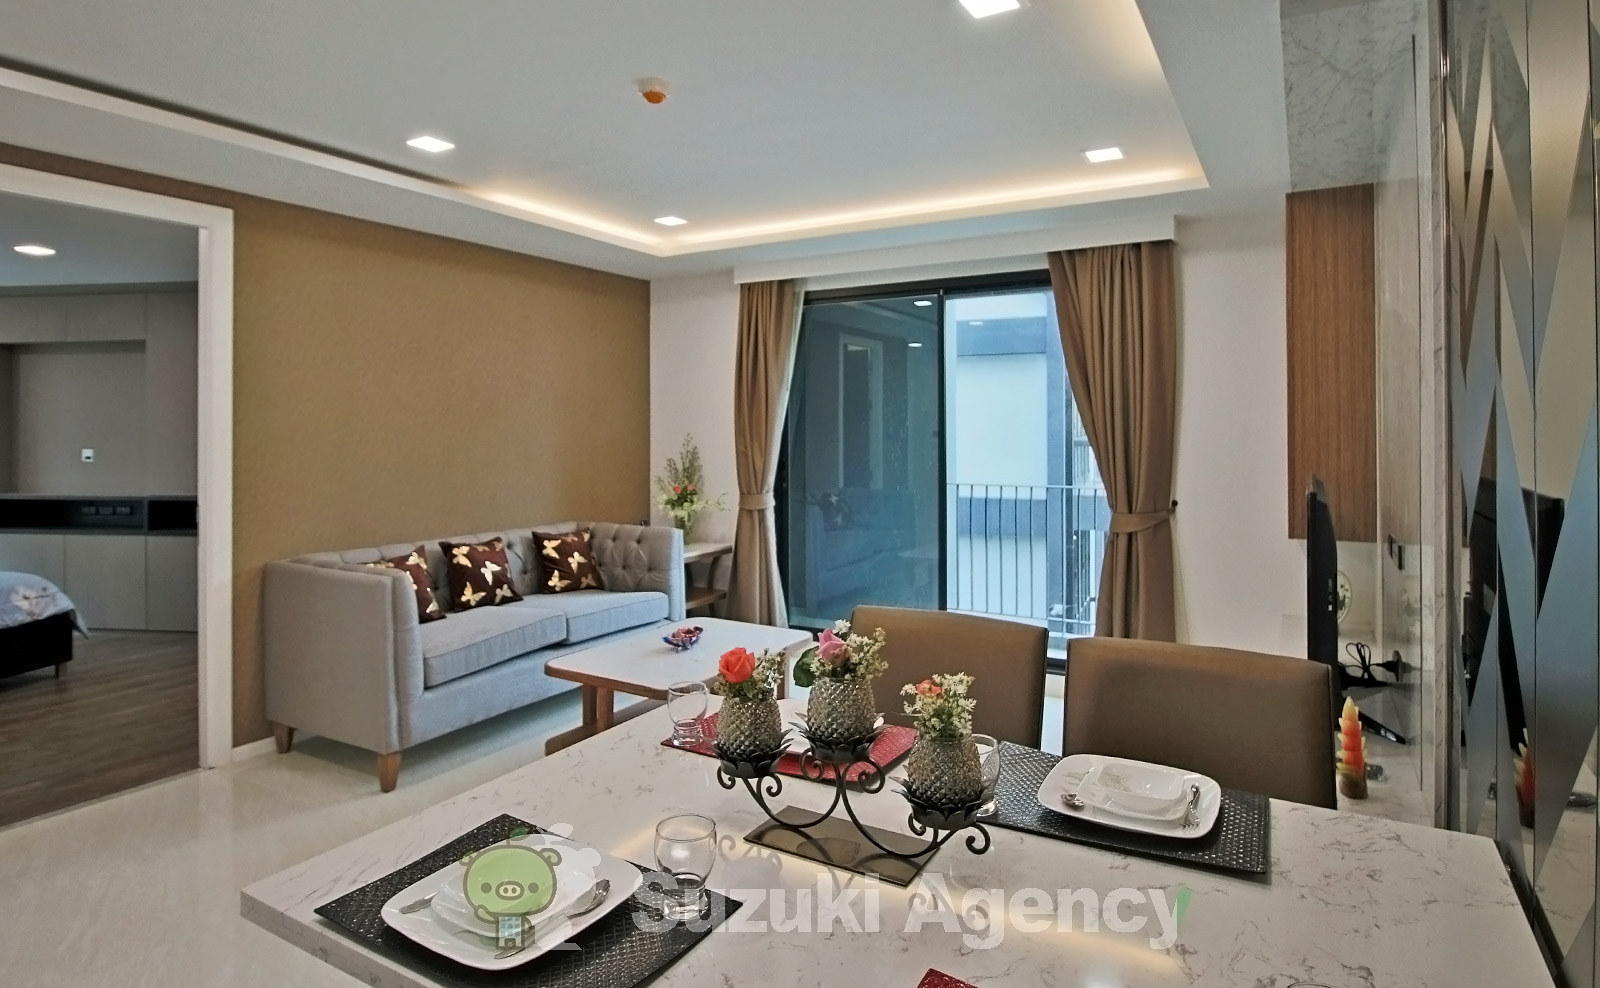 Kasturi Residence:2Bed Room Photos No.3